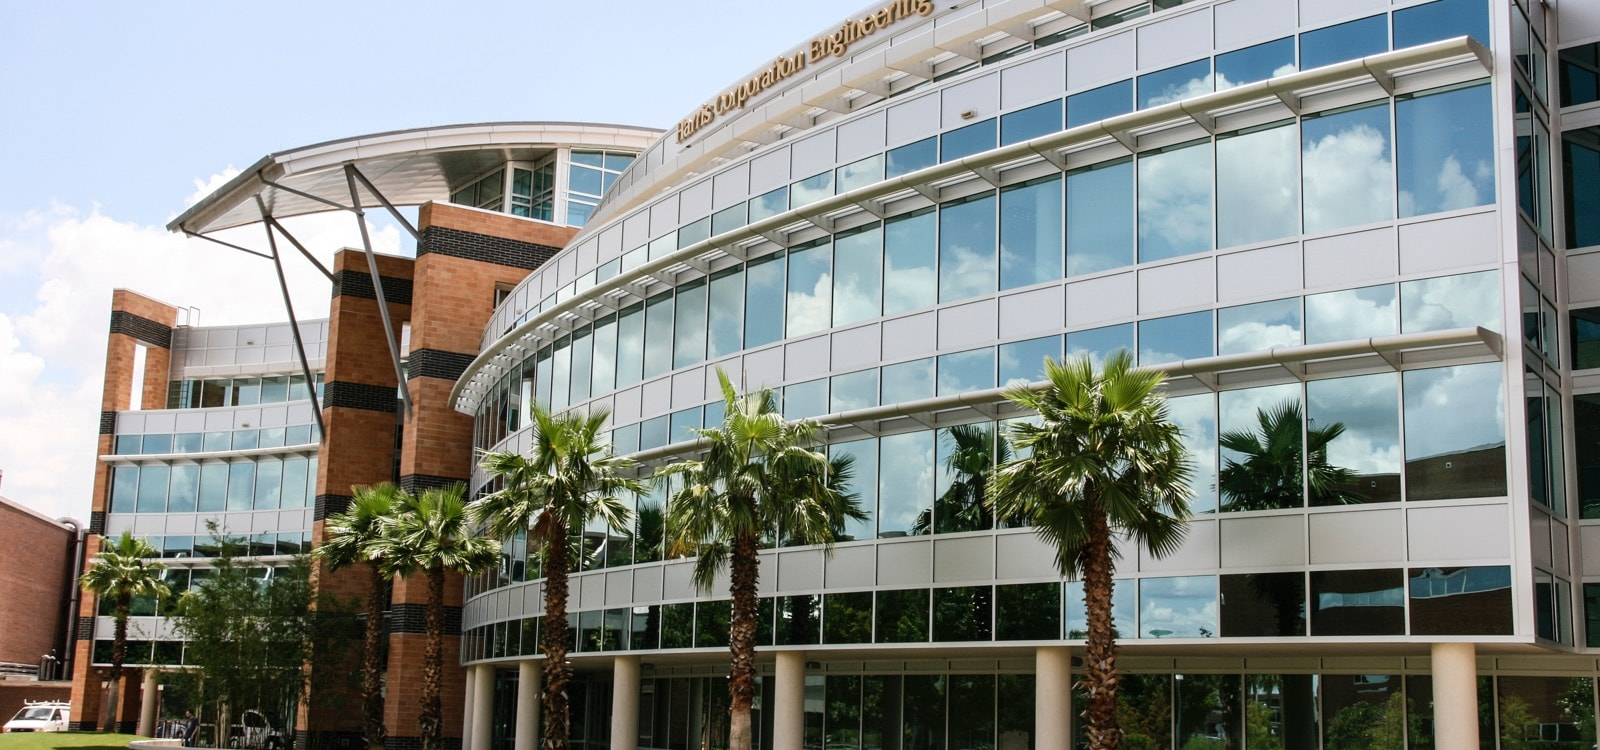 image of ucf campus building: harris corporation engineering center